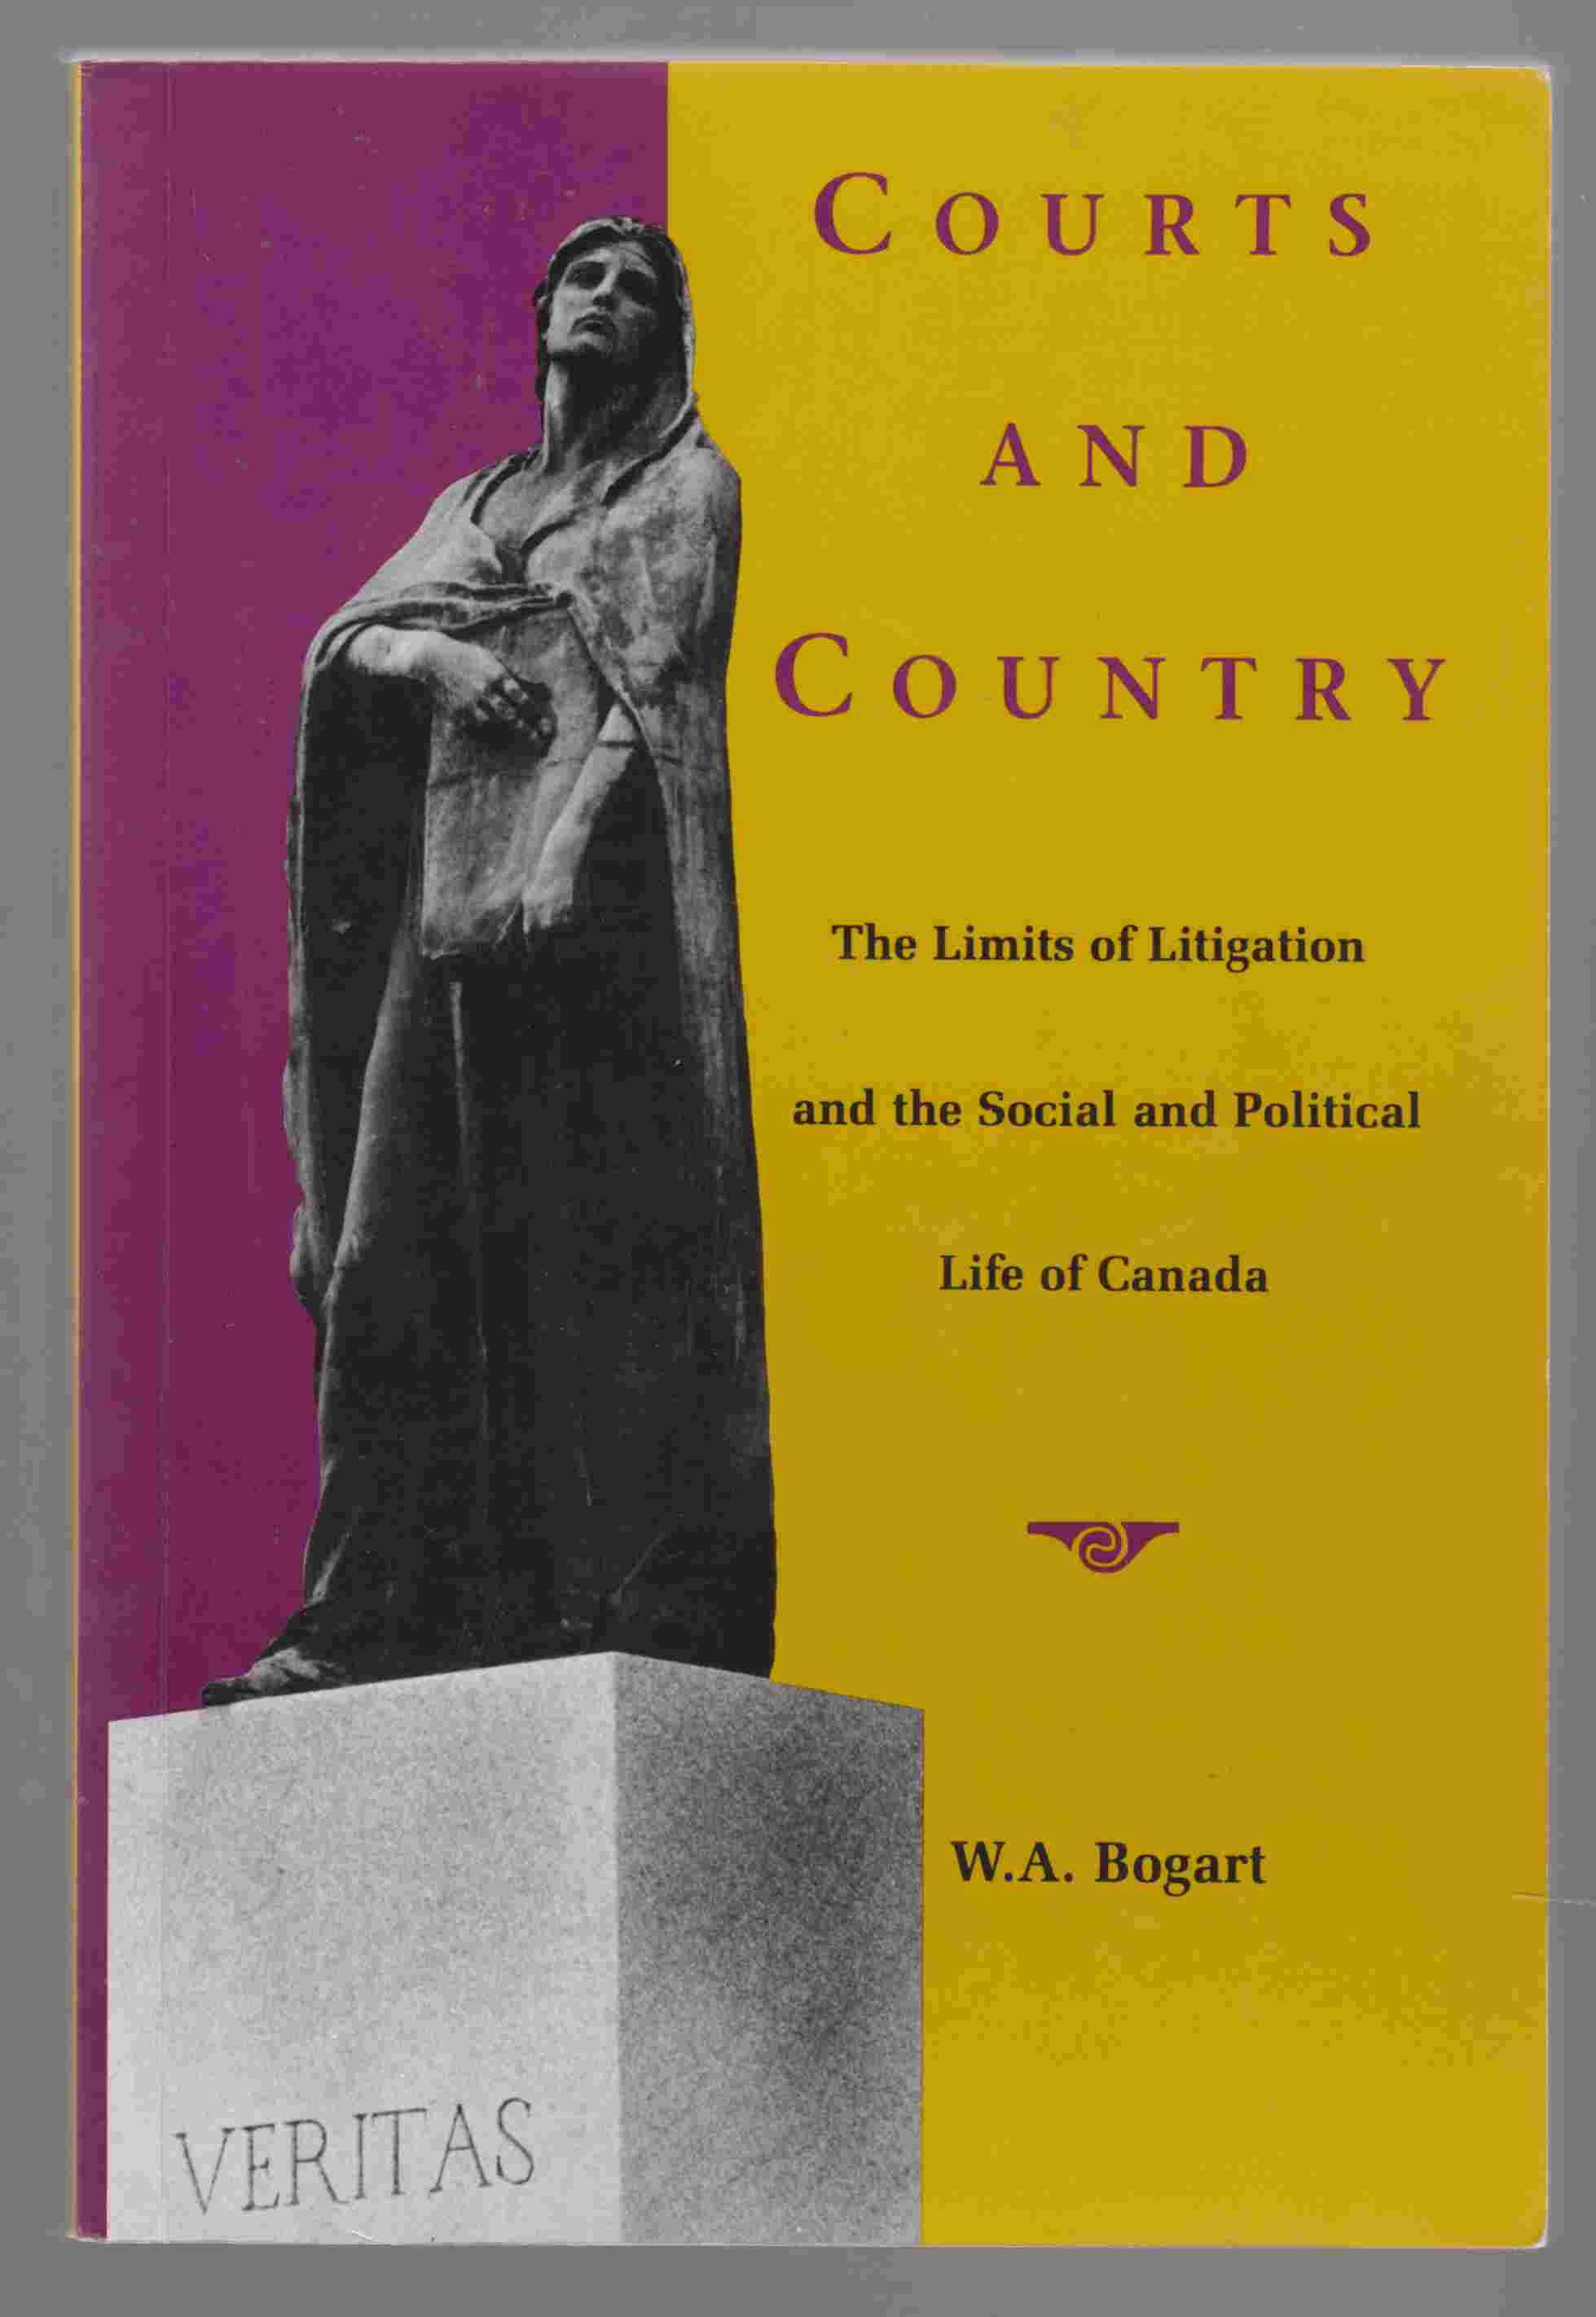 Image for Courts and Country The Limits of Litigation and the Social and Political Life of Canada